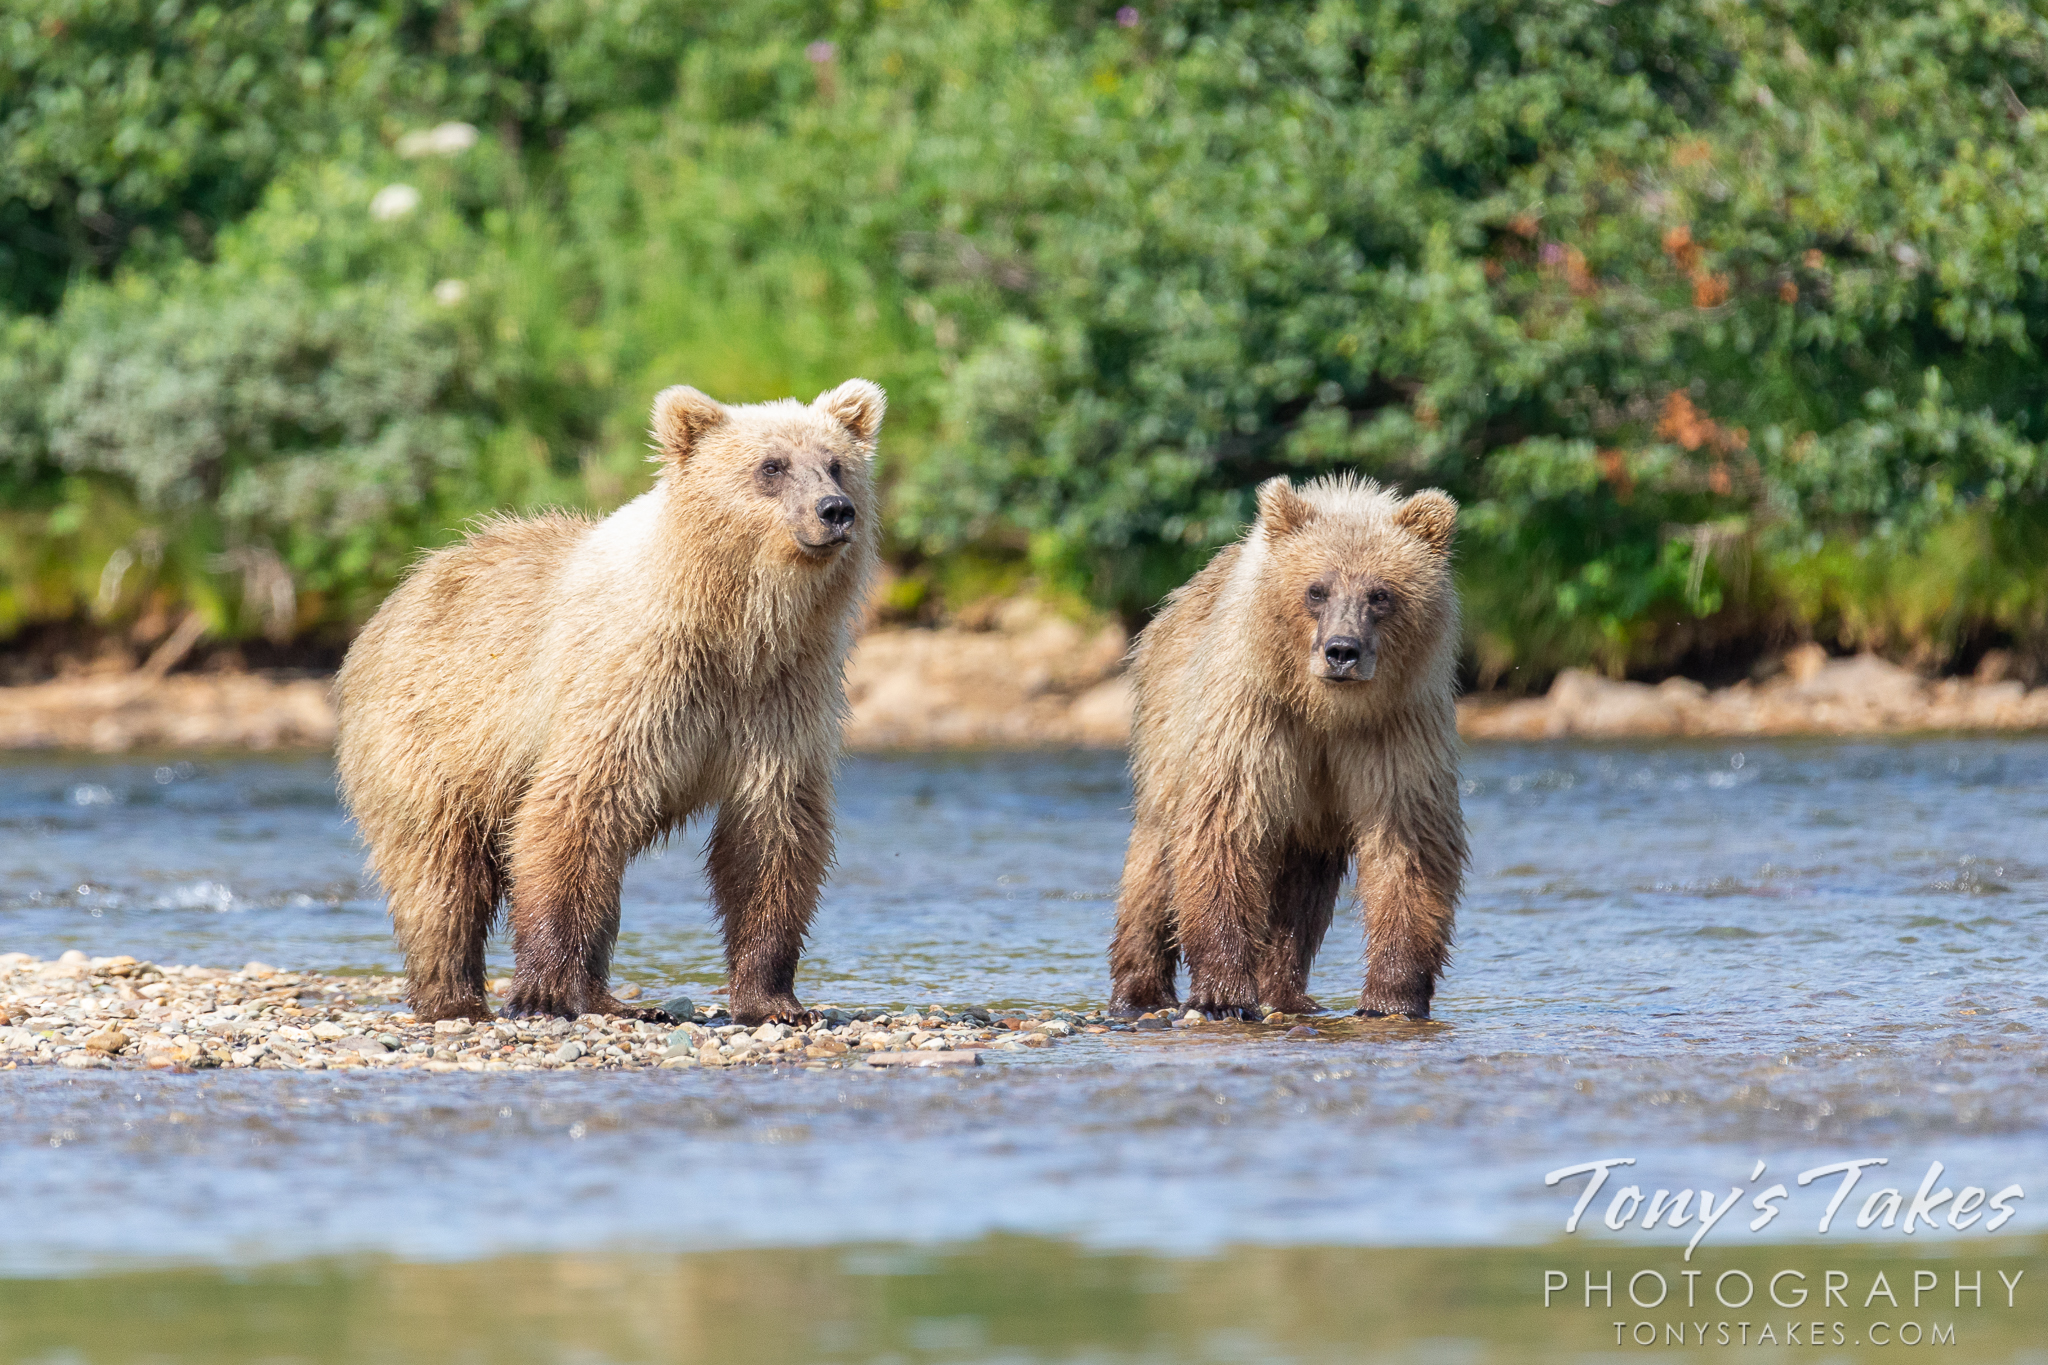 Yearling brown bear cubs wait for their mother to return. (© Tony's Takes)